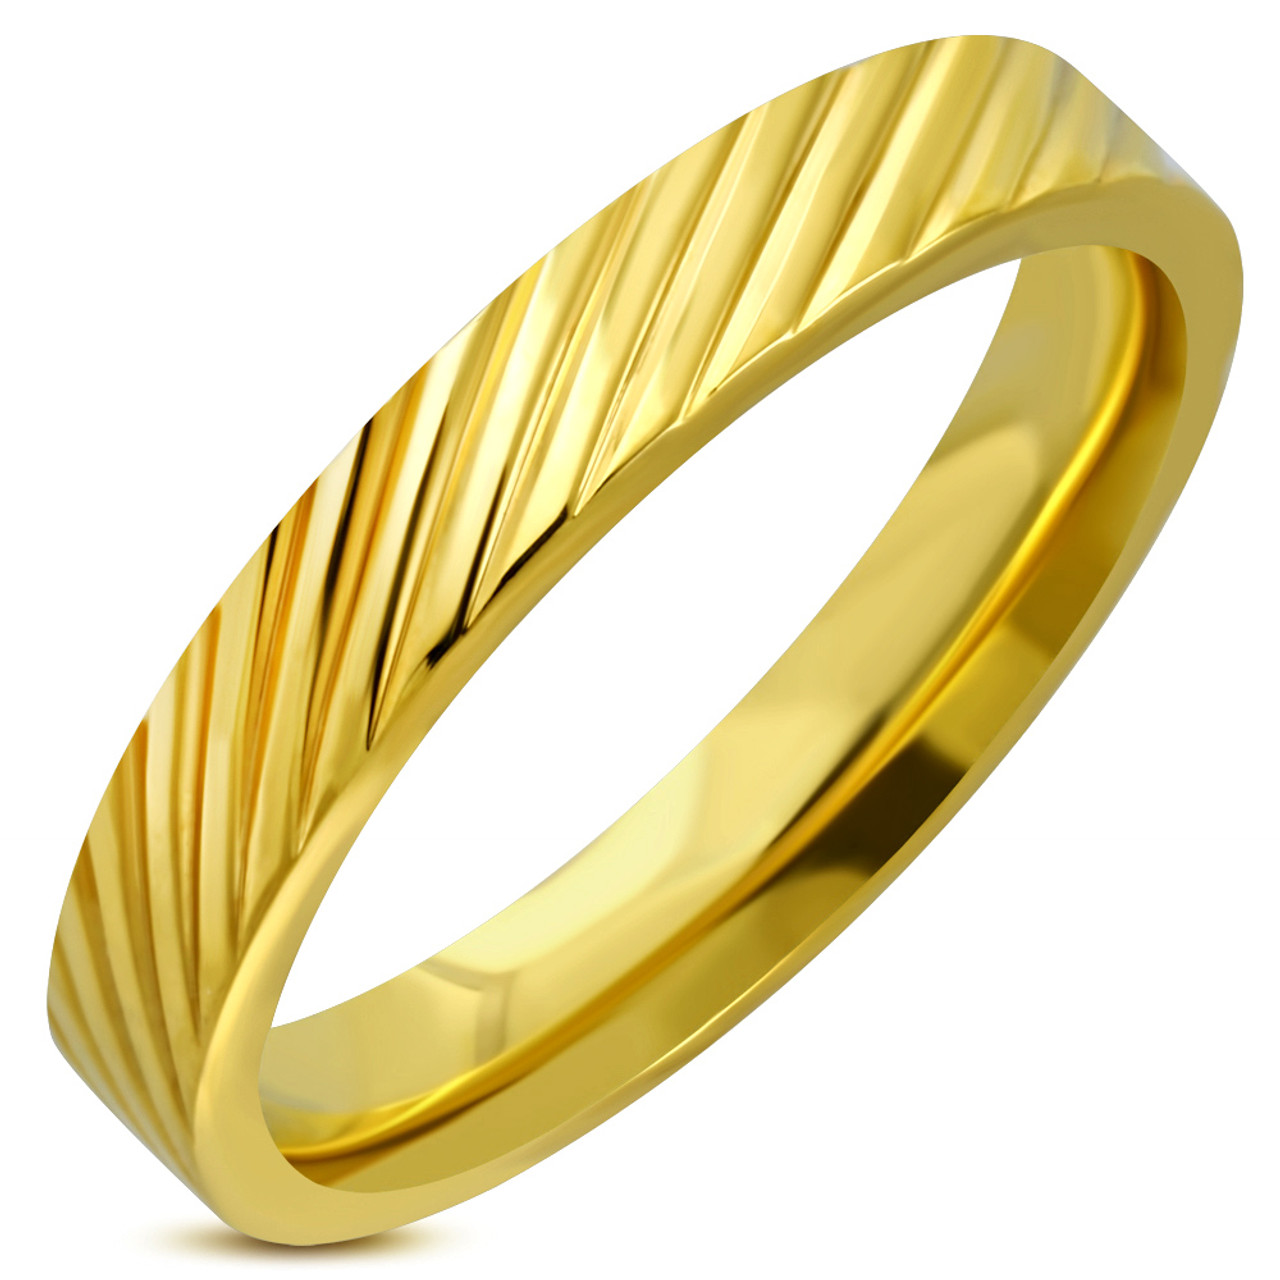 4mm Stainless Steel Gold Color Grooved Comfort Fit Band Ring Forevergifts Com,Sage And Lavender Color Scheme